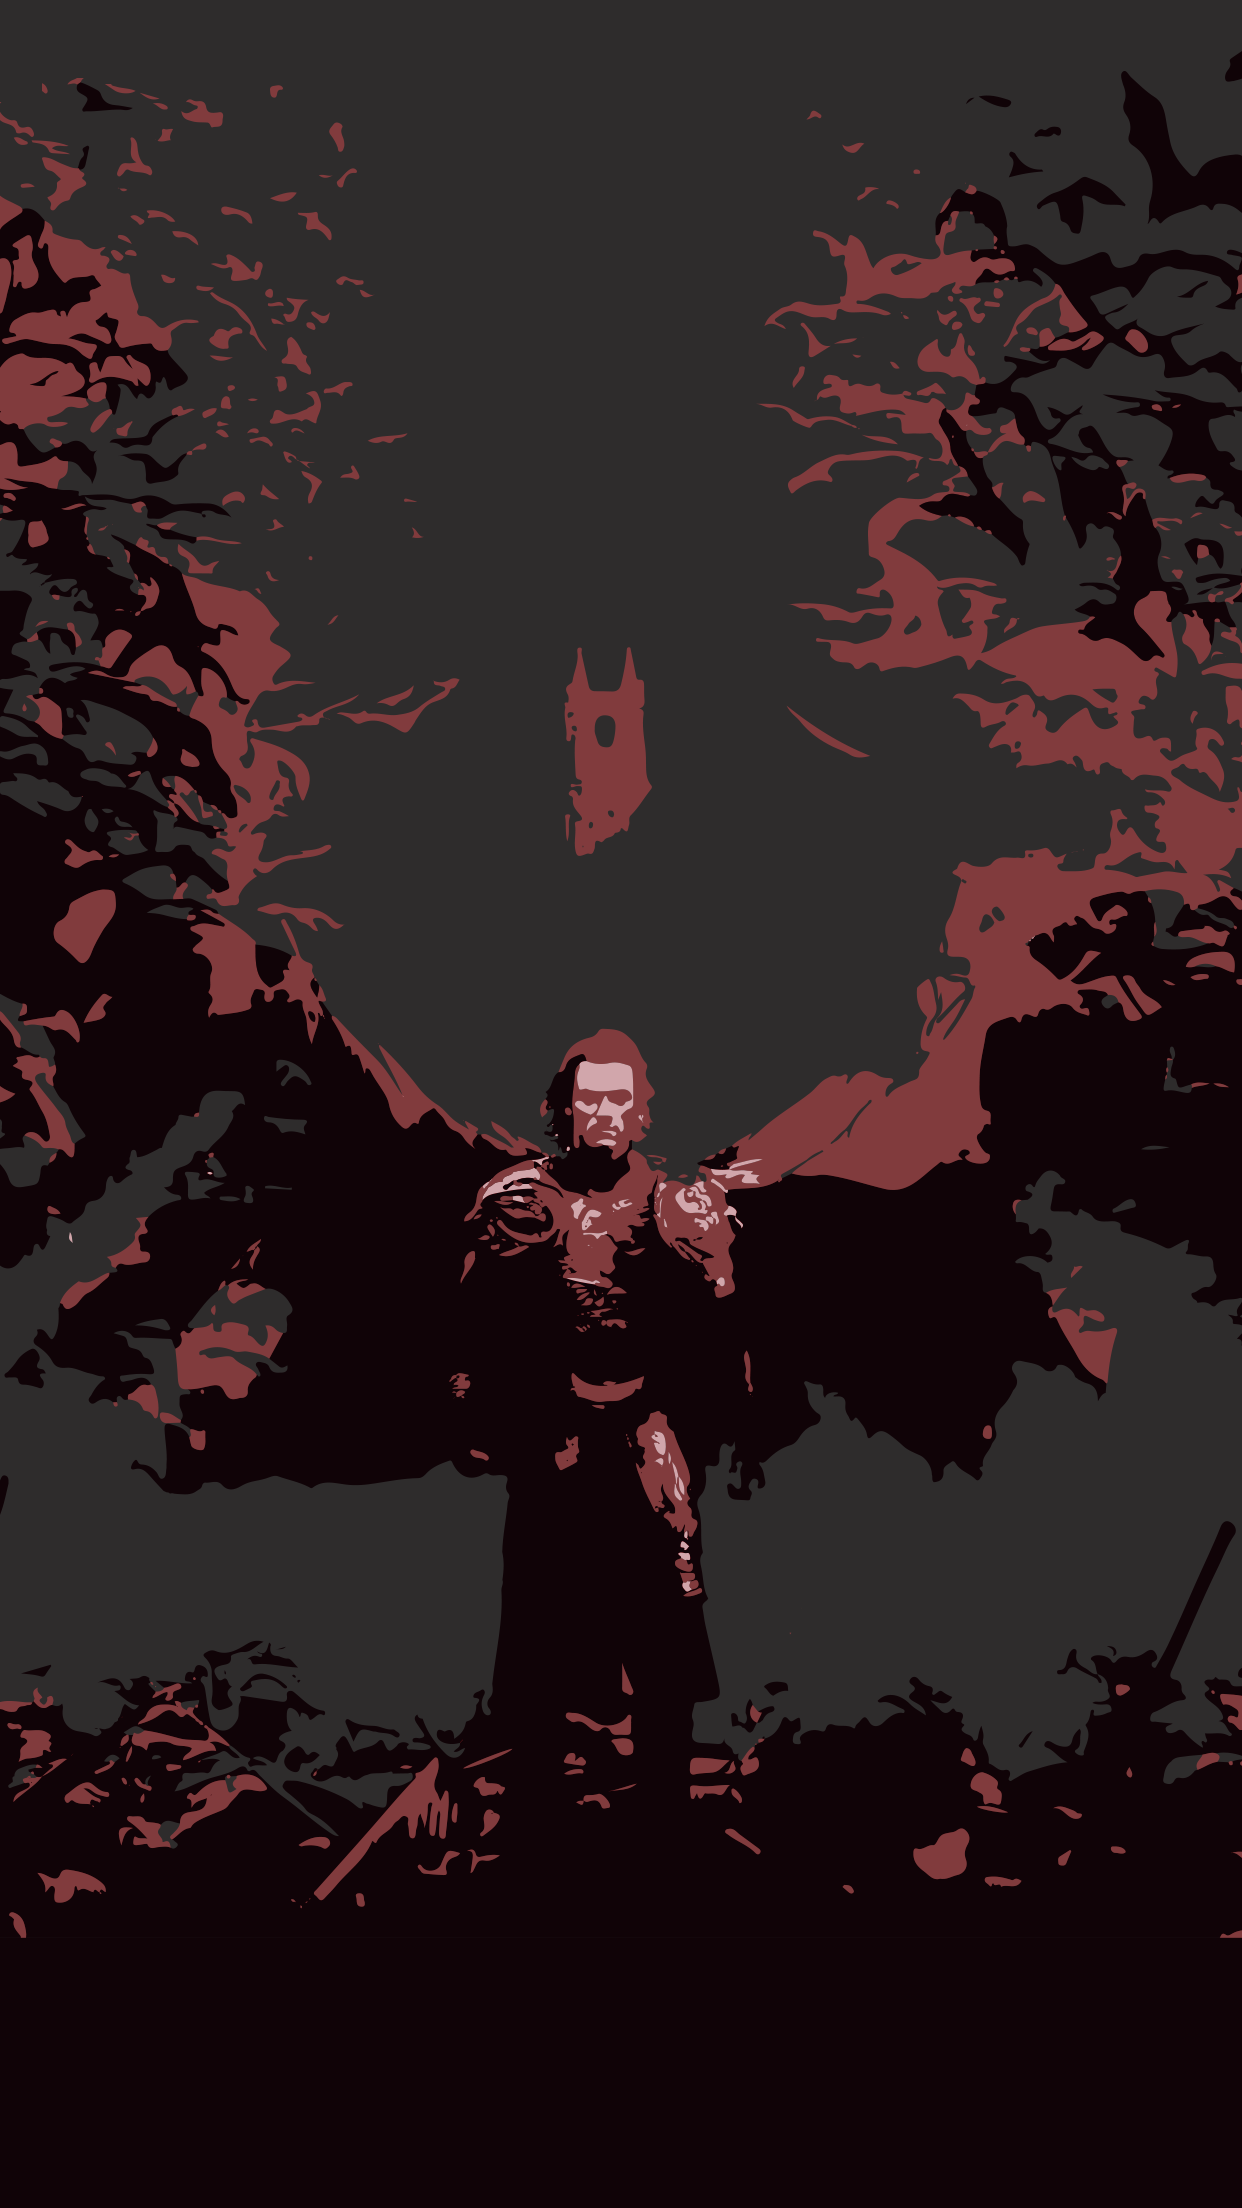 1242x2208 Zoobhoy8 Dracula Untold Https - Dracula Untold Wallpaper Iphone ...